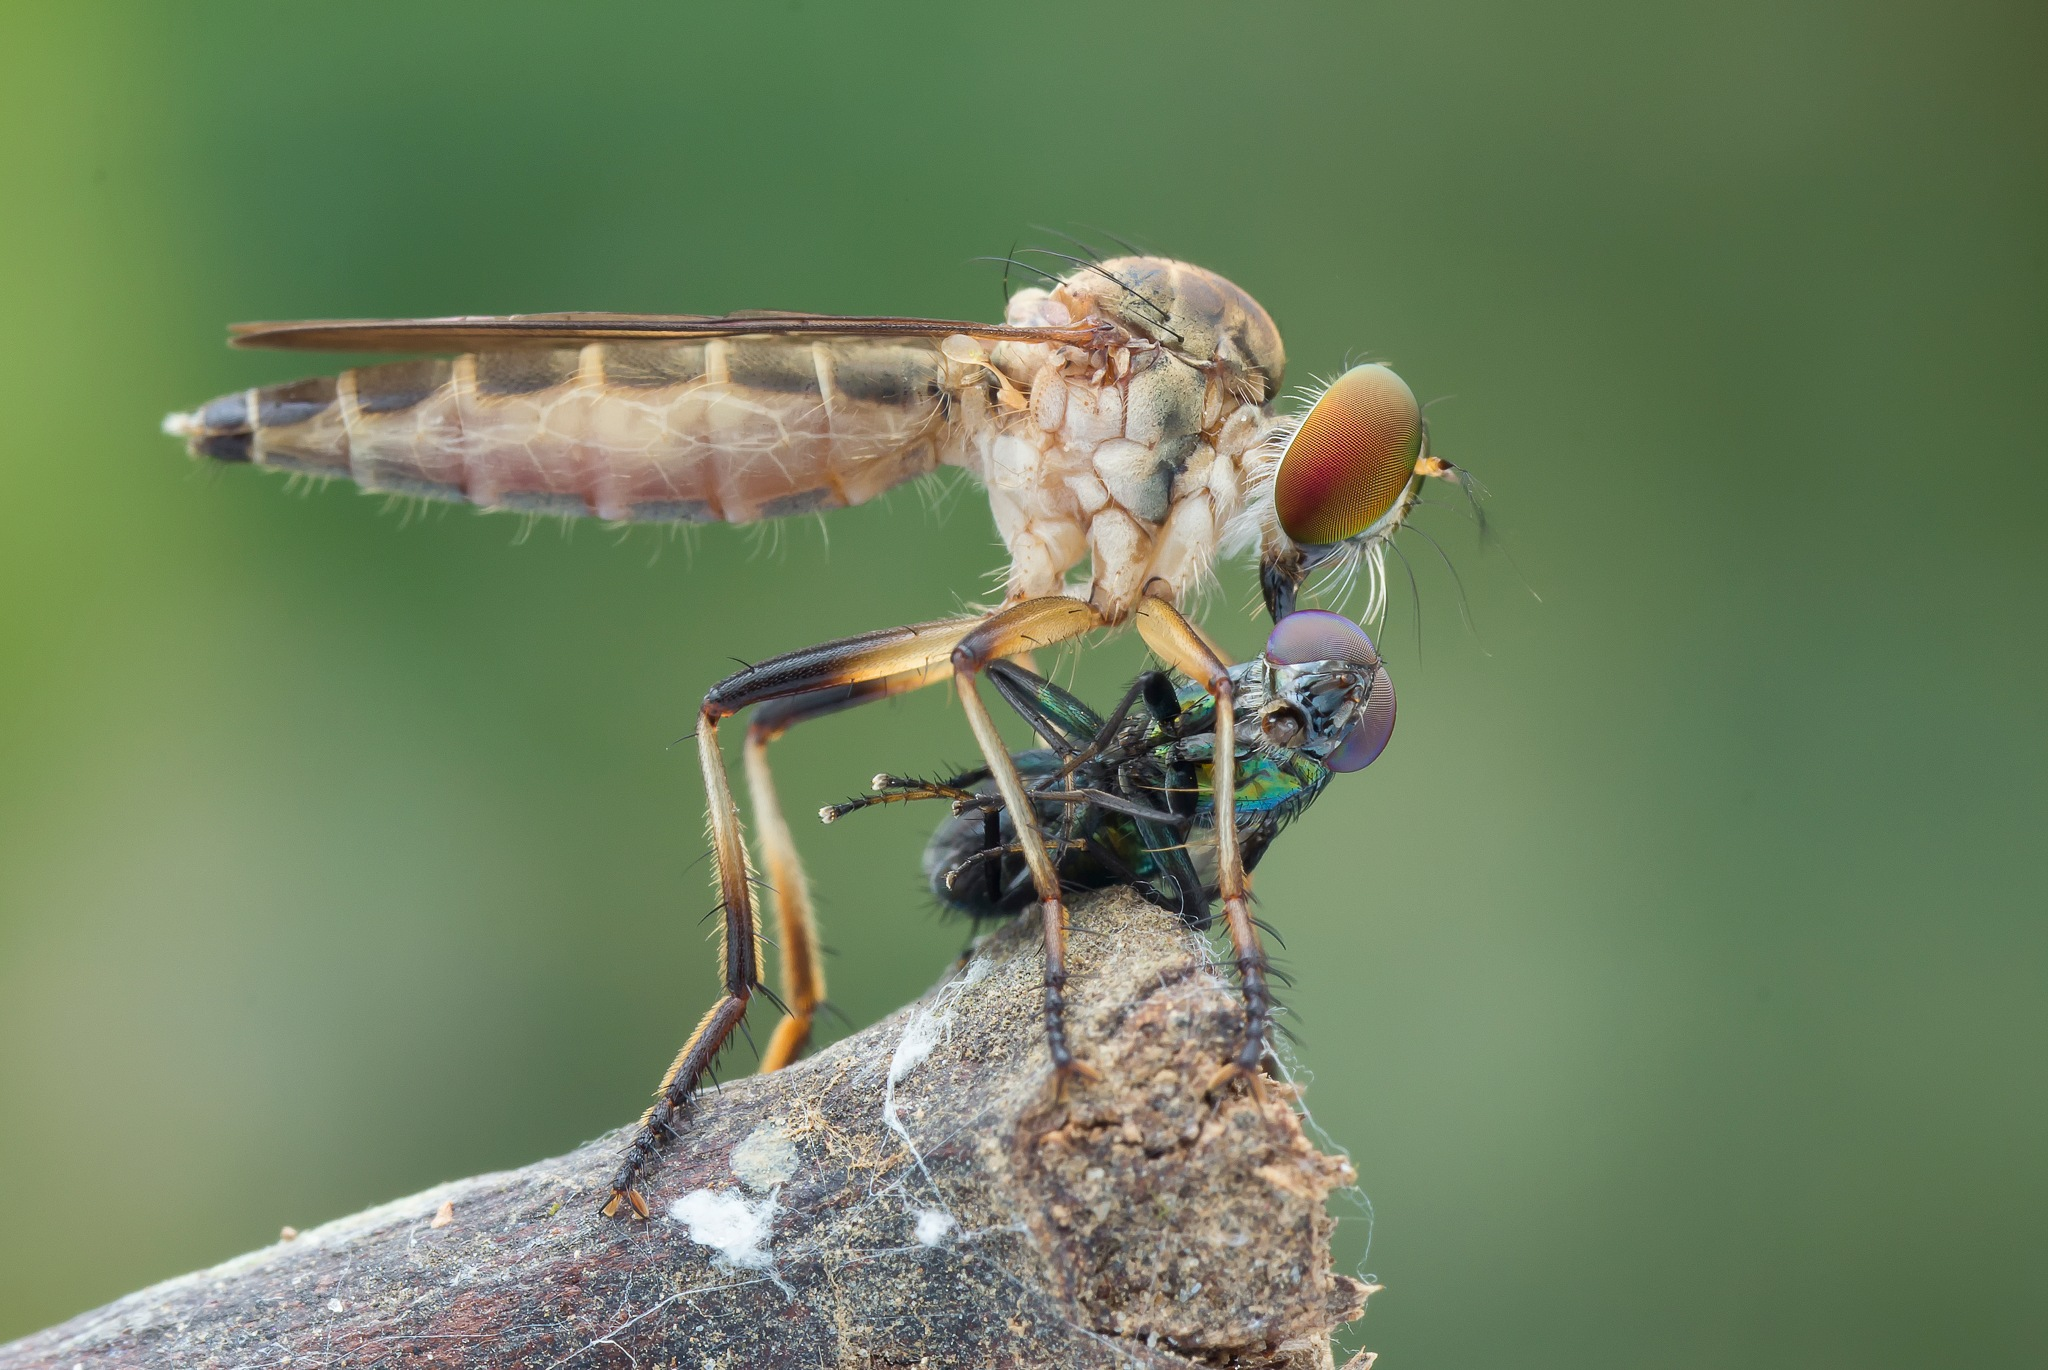 Robber Fly With Prey 171026A by carrot9817